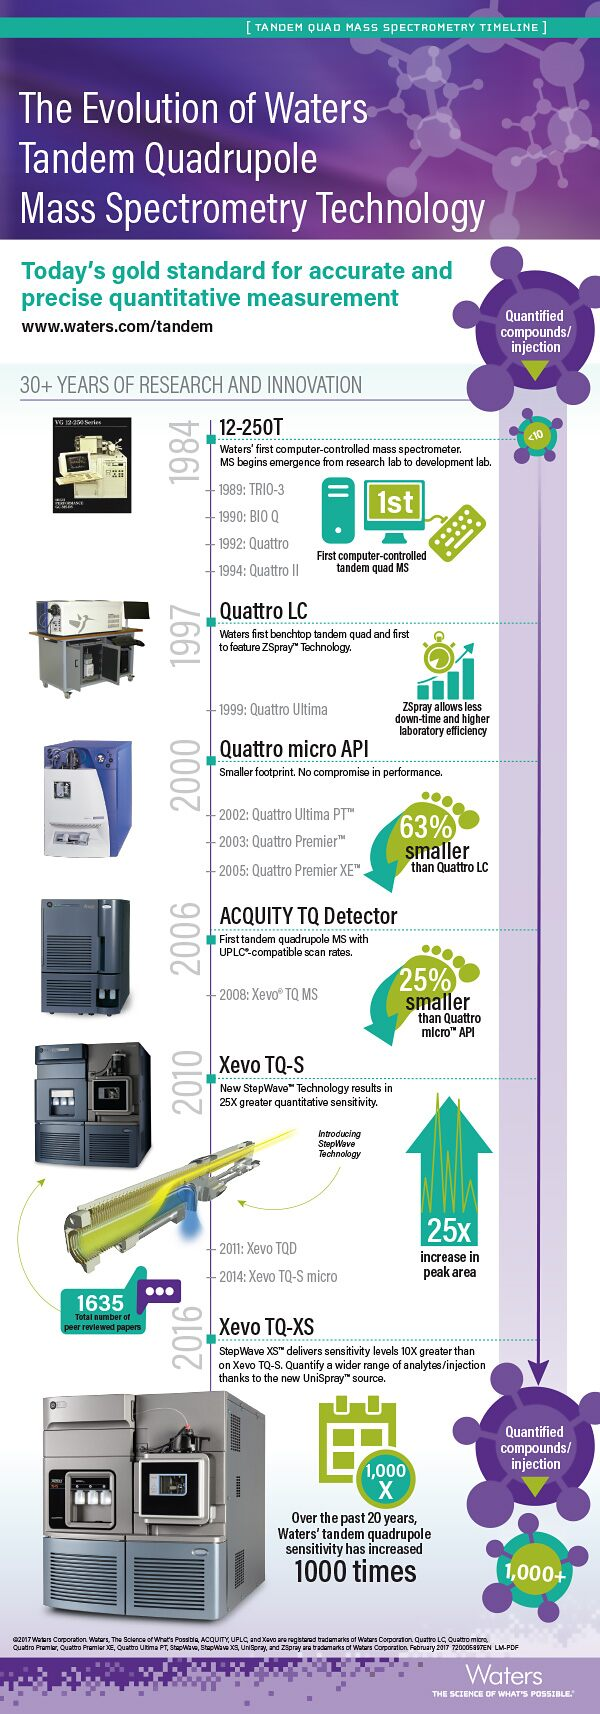 Infographic: Evolution of Tandem Quadrupole Mass Spectrometry Technology